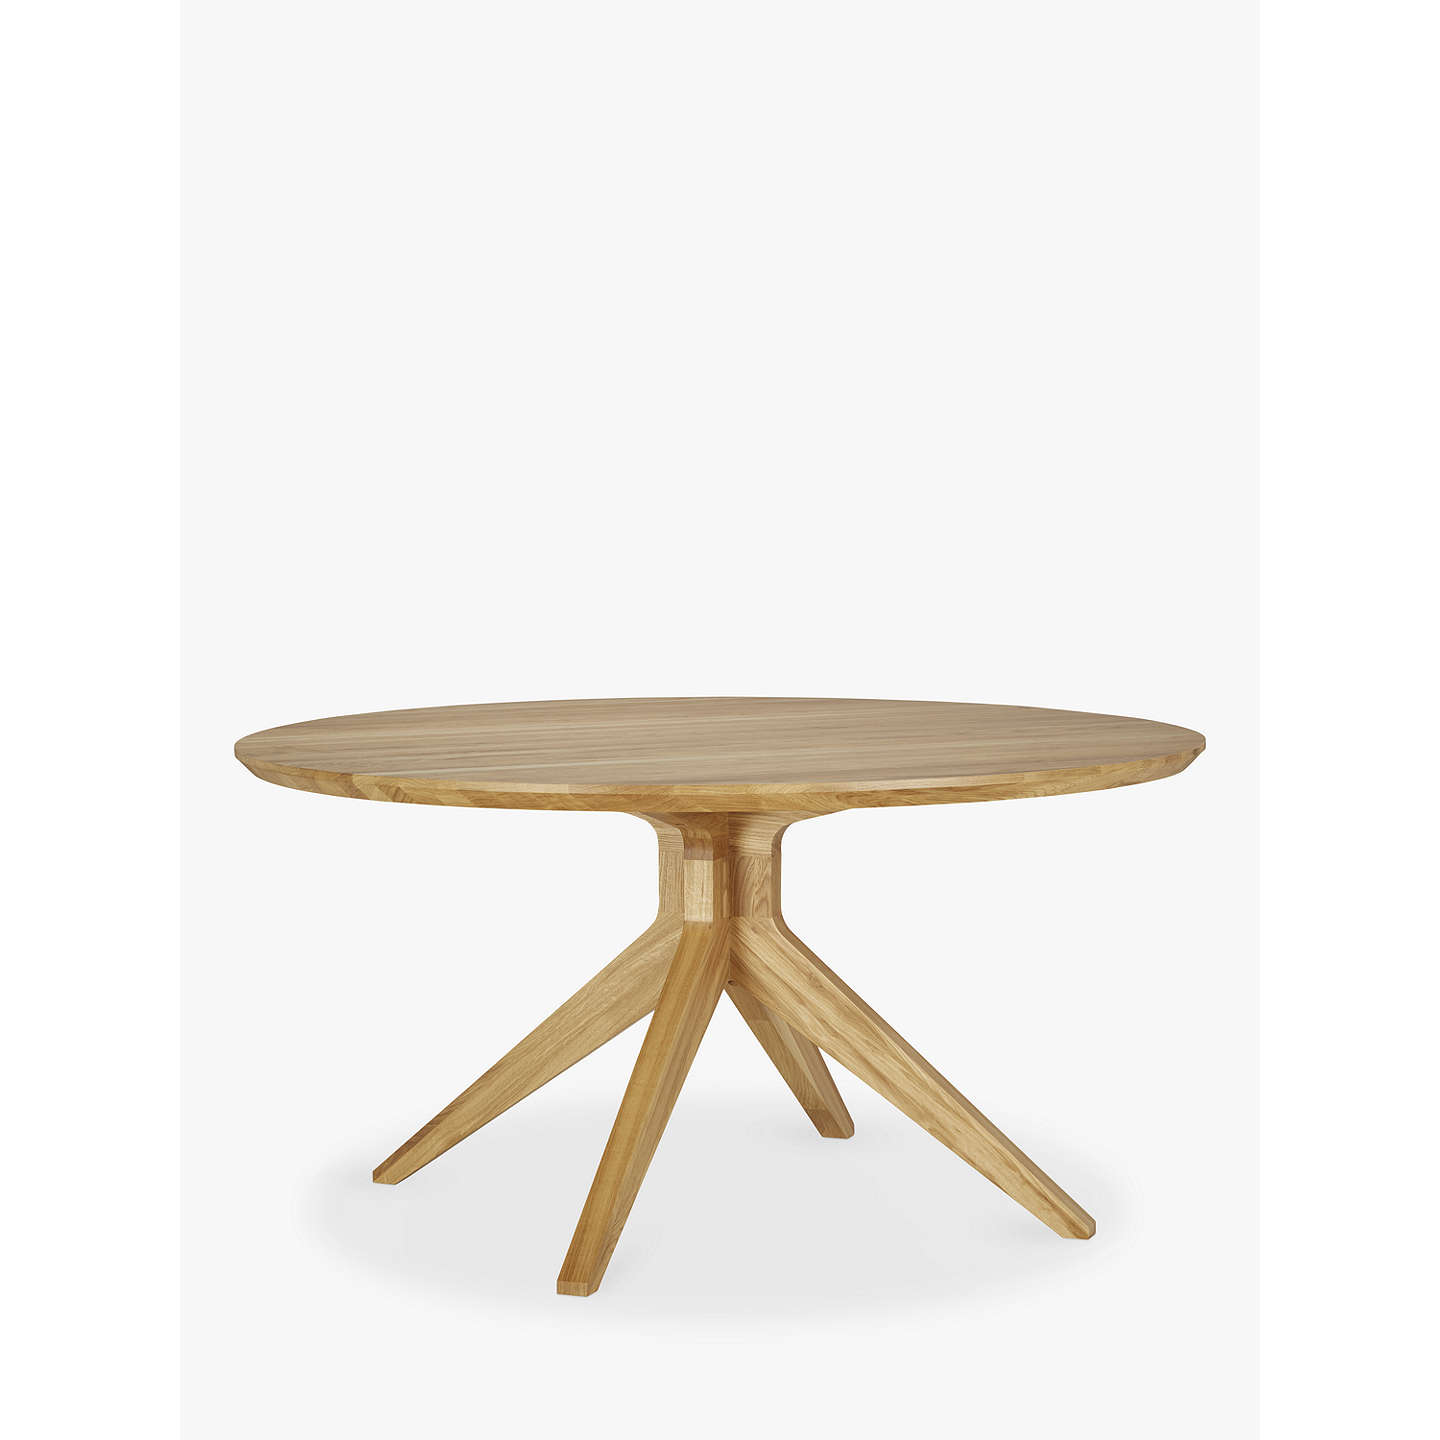 6 Seater Round Dining Table: Matthew Hilton For Case Cross 6-Seater Round Dining Table